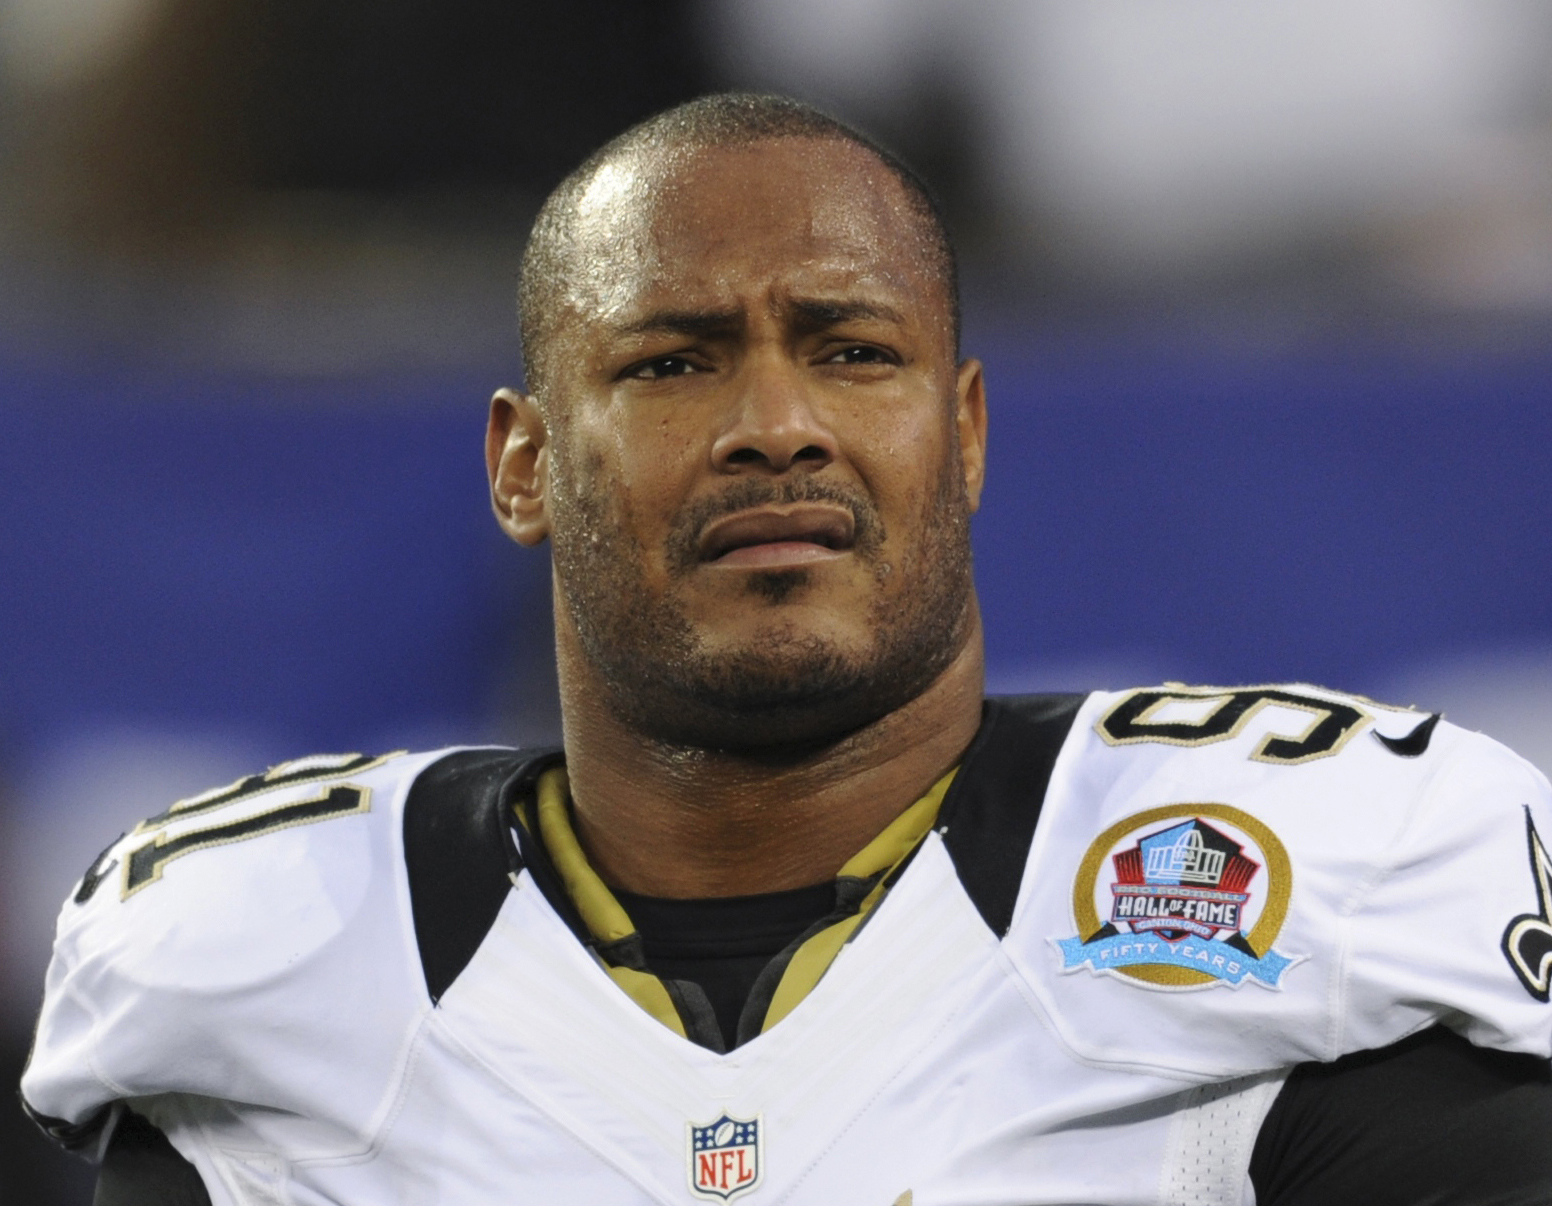 Jury selection begins in high-profile Saints star's death